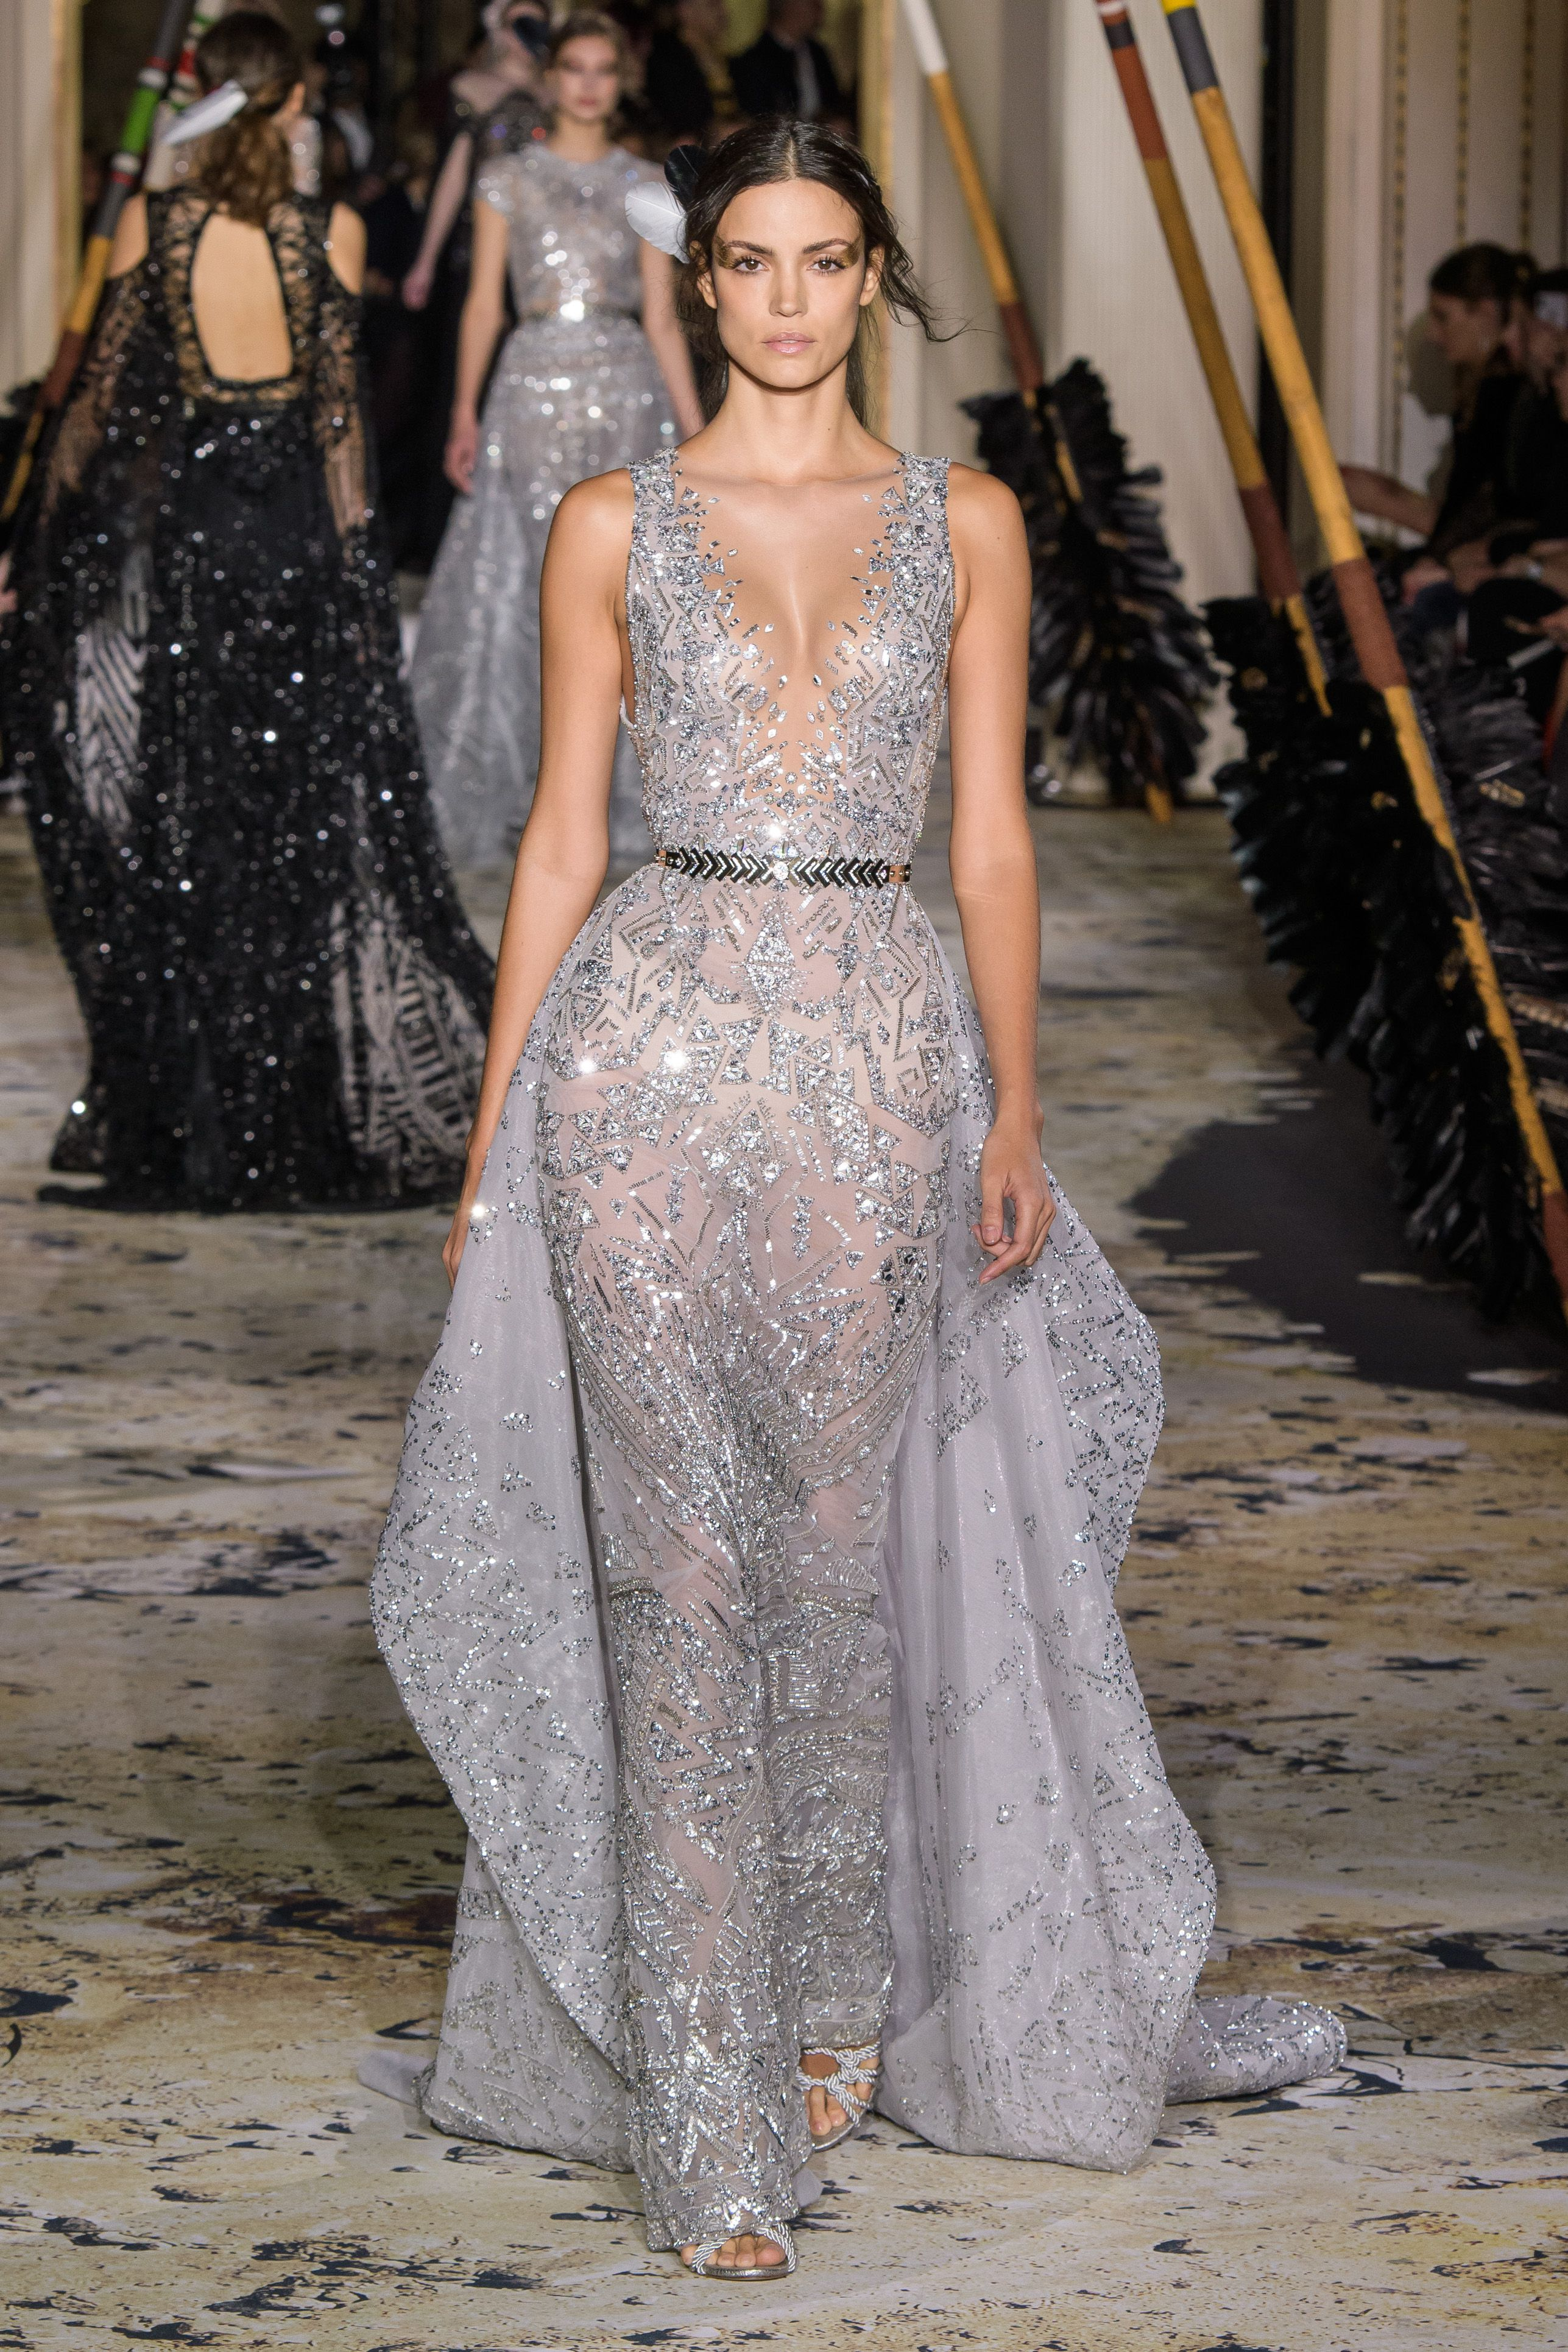 ZUHAIR MURAD TOTAL LOOK